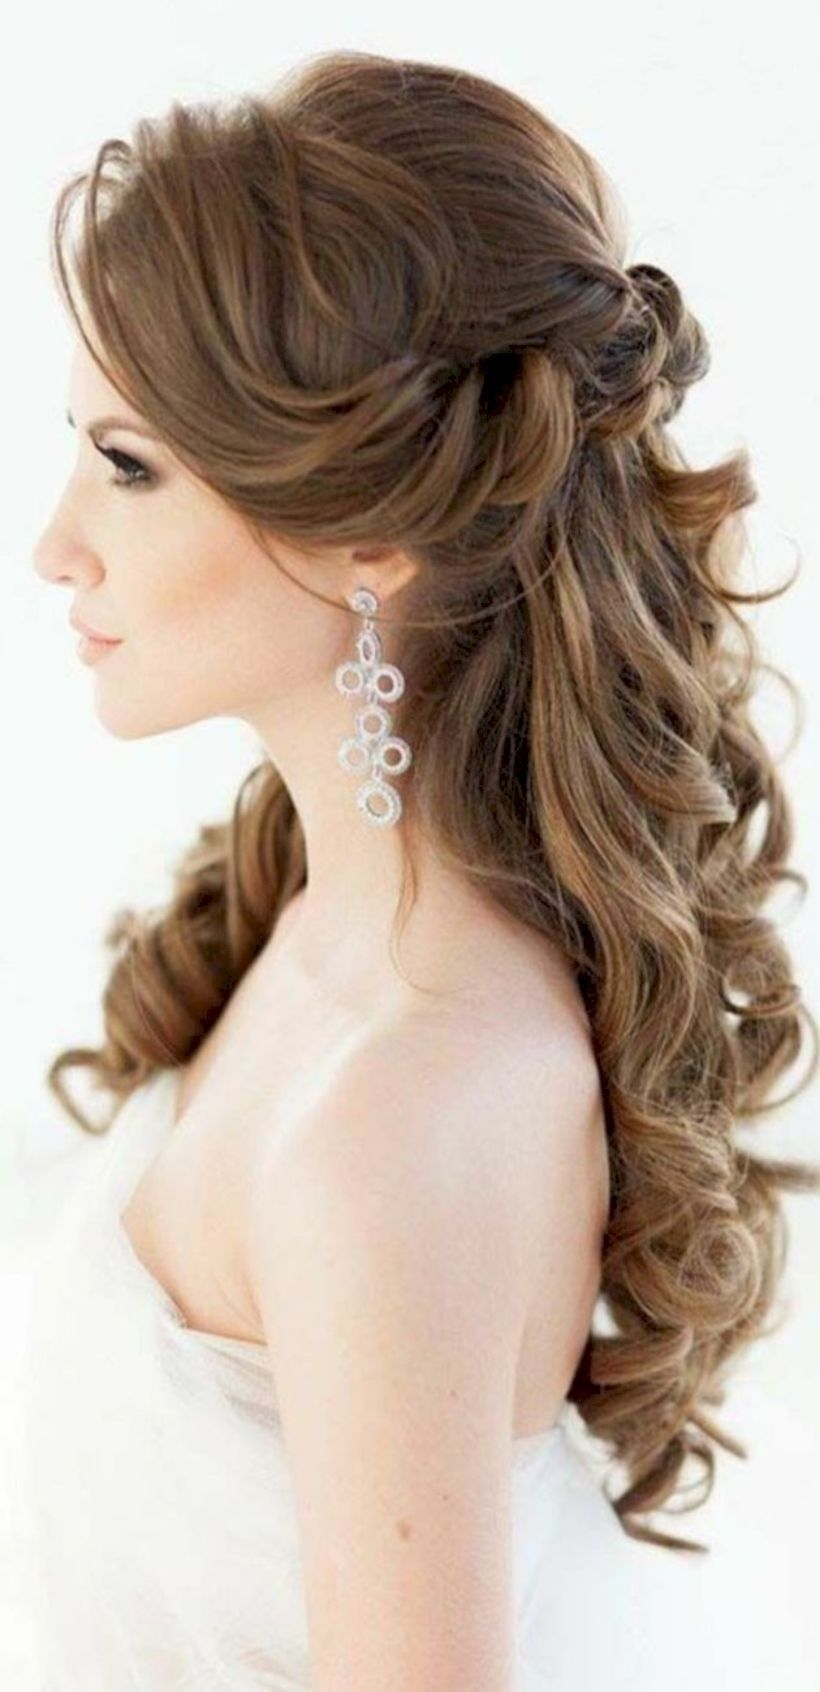 38 beautiful wedding bridesmaid hairstyles for long hair